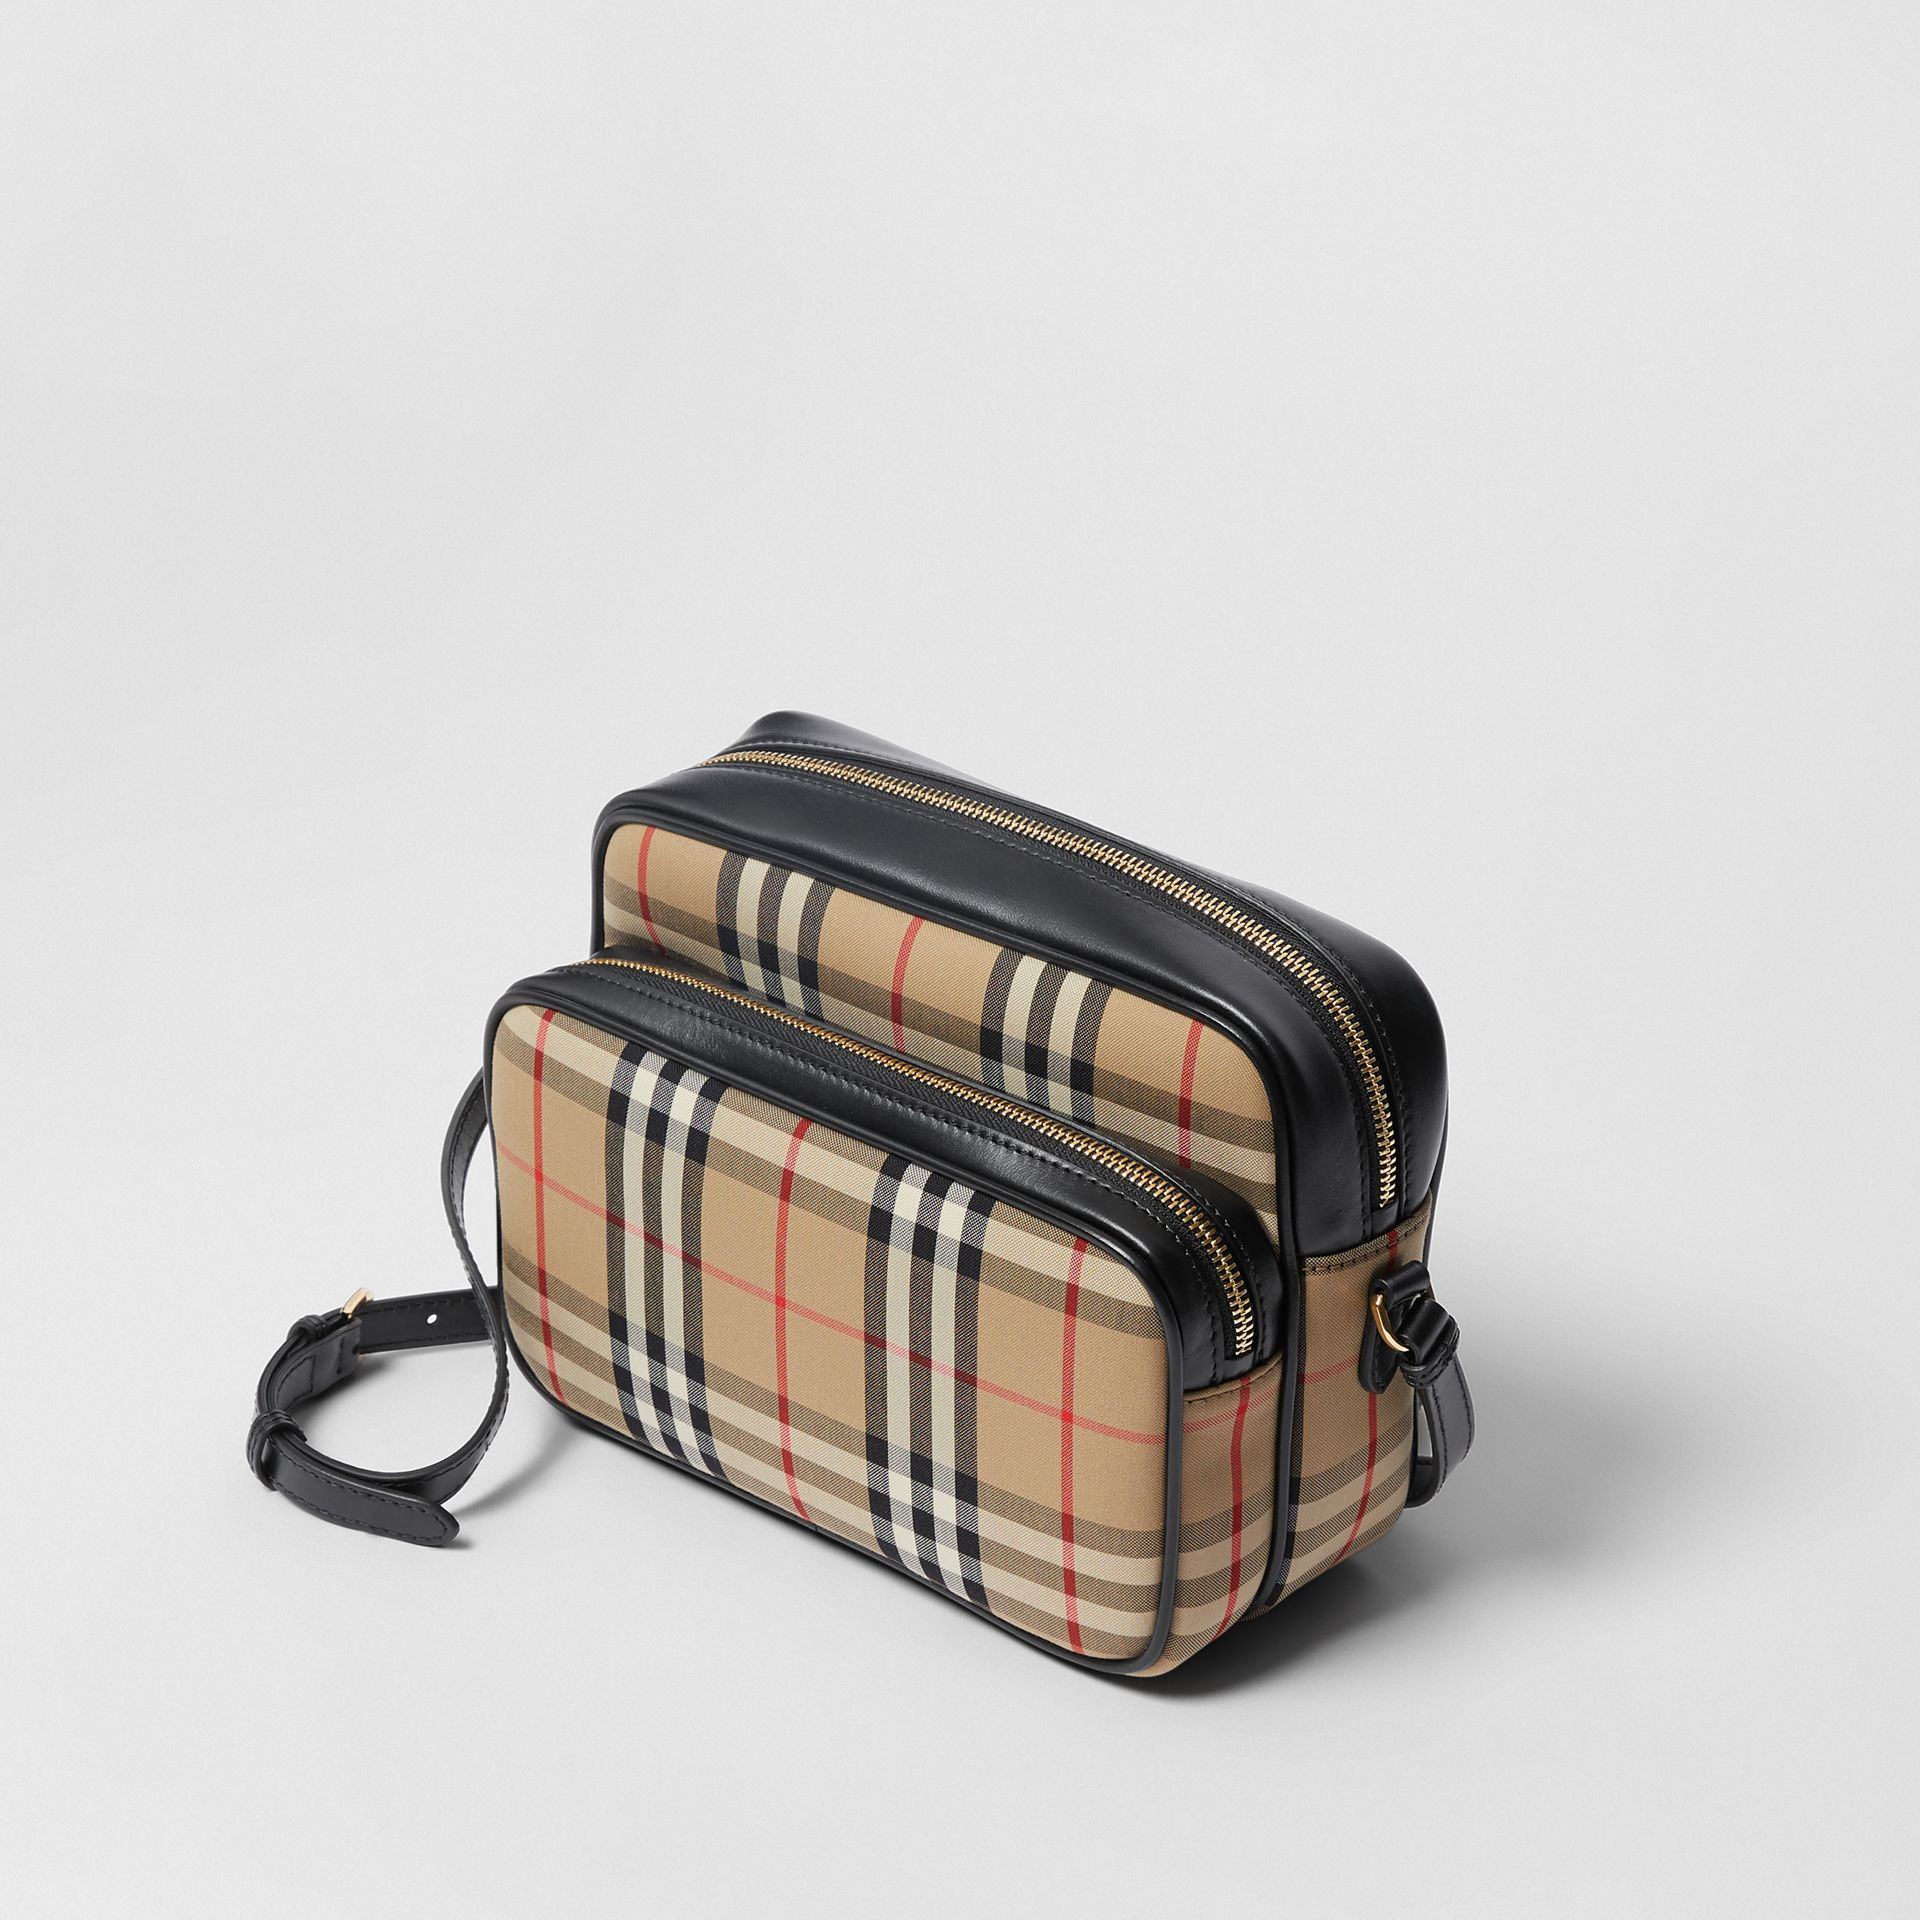 Medium Vintage Check and Leather Camera Bag in Archive Beige - Women | Burberry Canada - gallery image 2